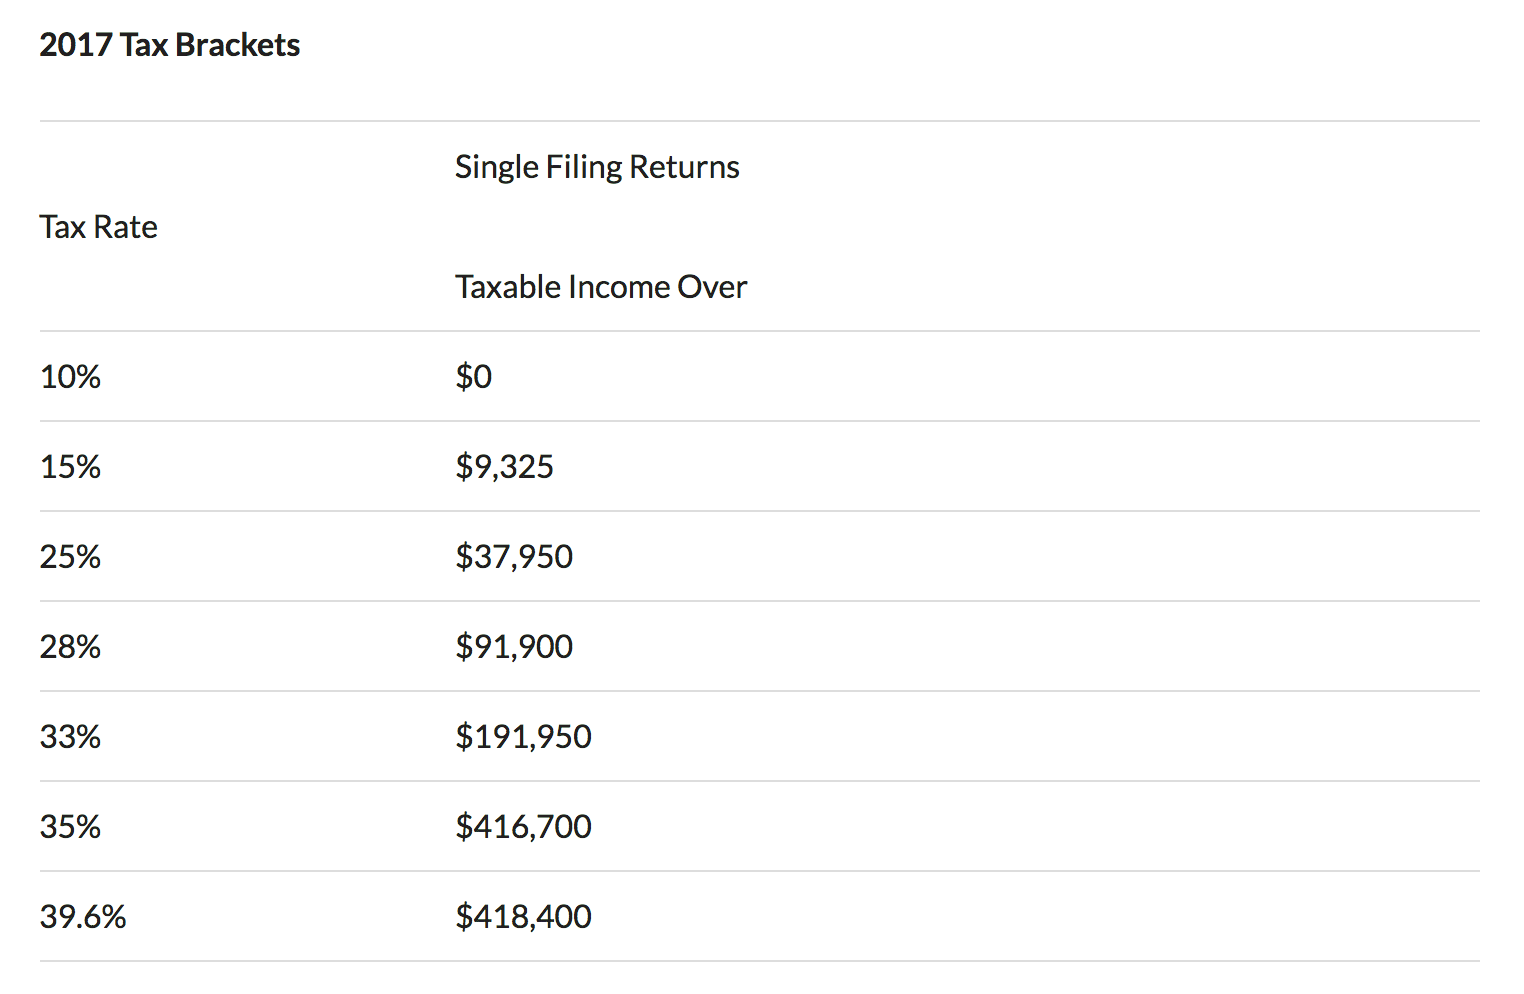 2017 single filing returns tax bracket